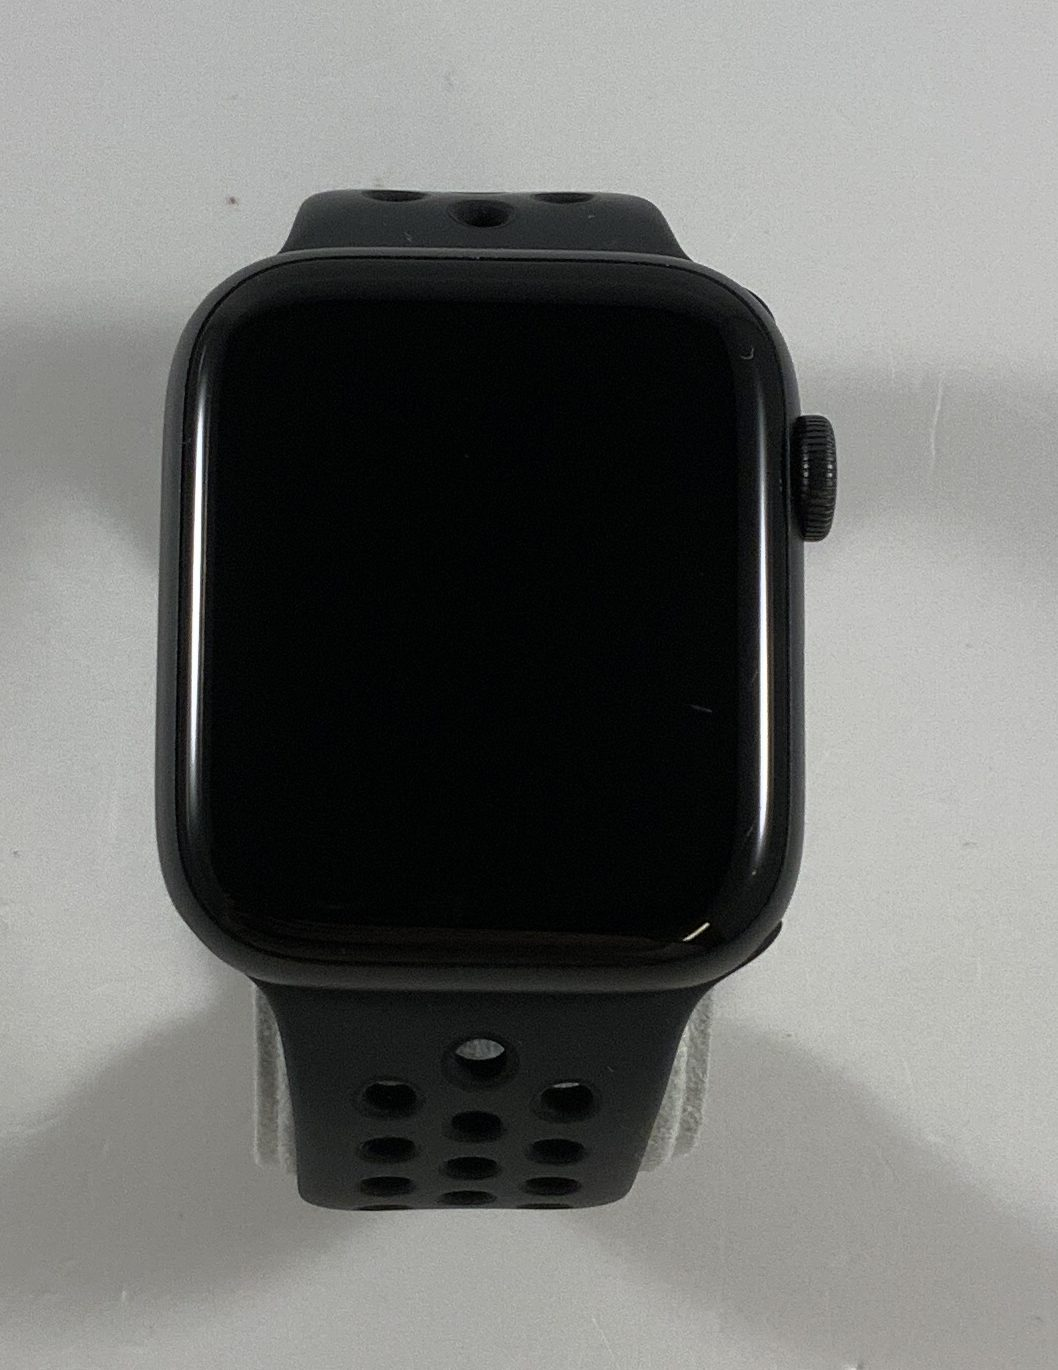 Watch Series 5 Aluminum Cellular (44mm), Space Gray, Kuva 1